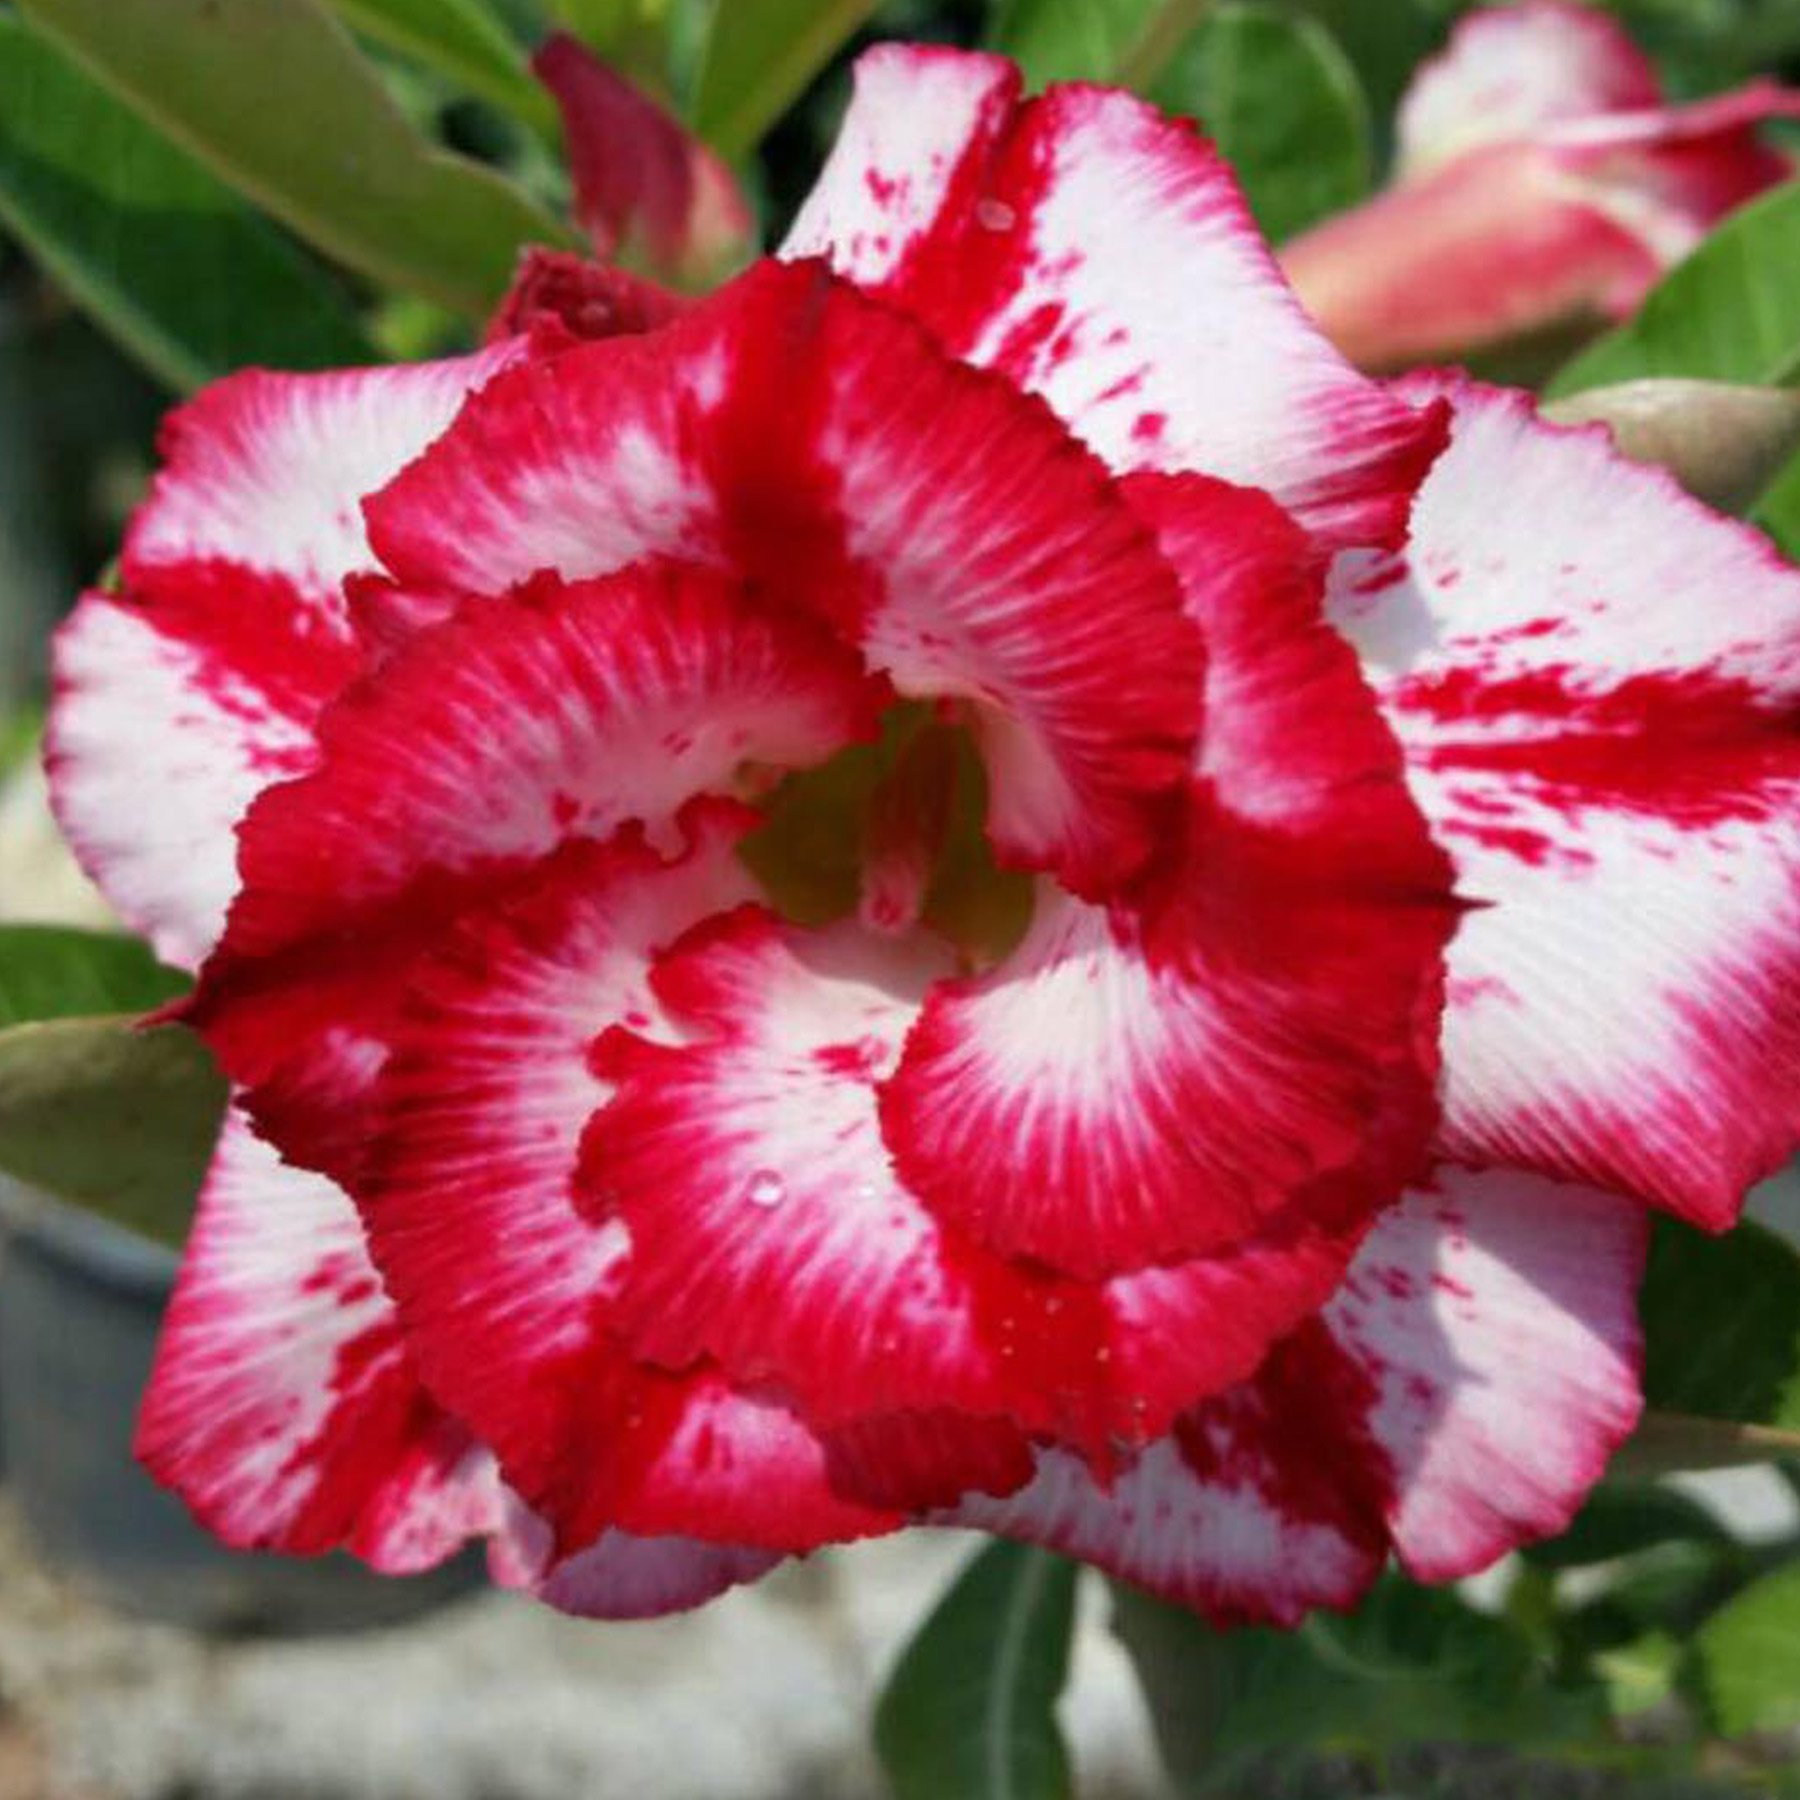 Rare Adenium Obesum, Double Flower, Grafted Mature Plant, Easy Care, Desert Rose Plant, New Hybrids, Not Just Seeds (01 Big Harry)